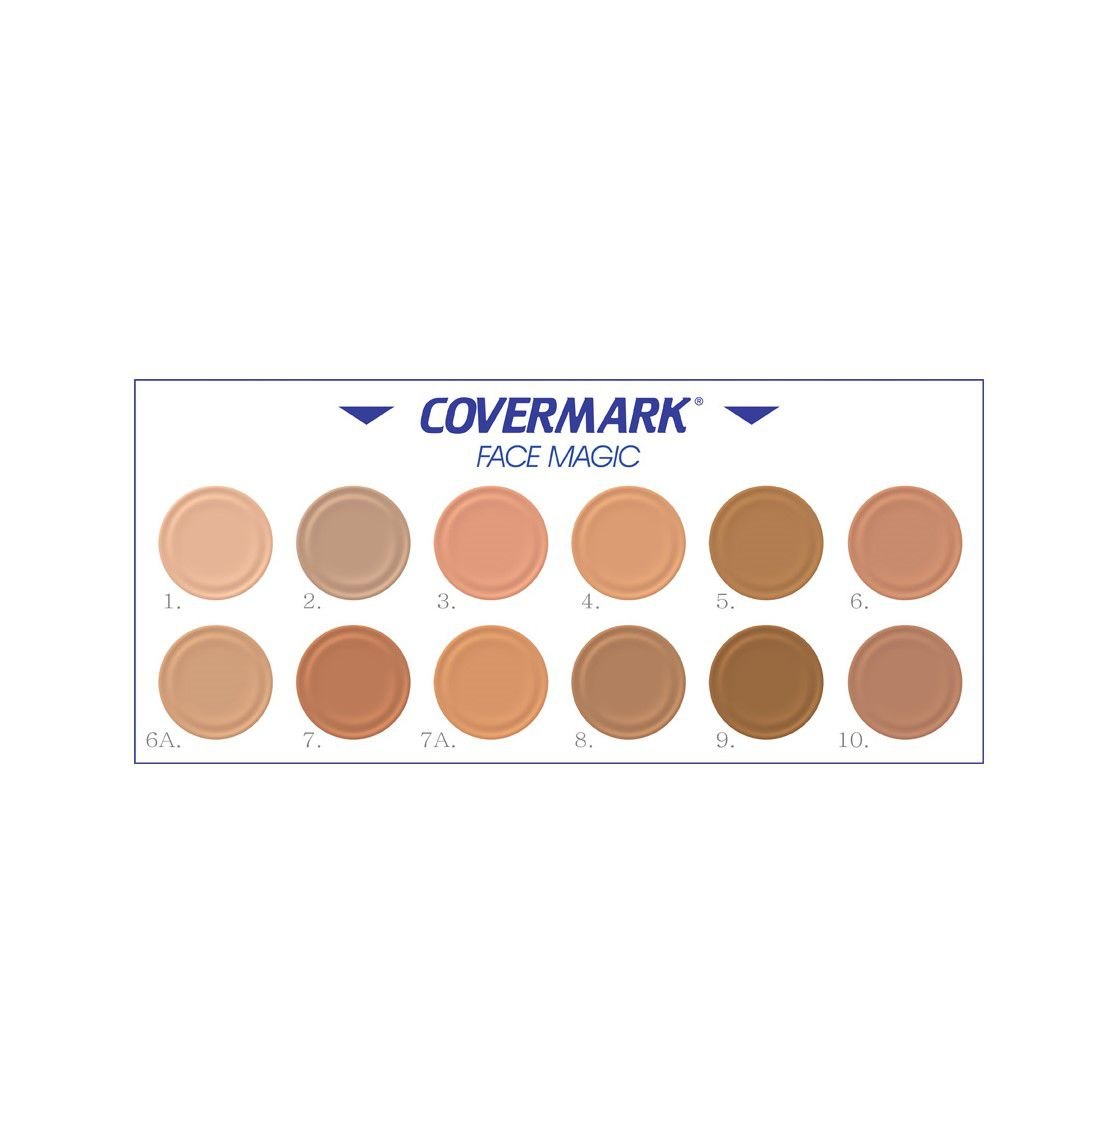 Covermark Face Magic - Refil